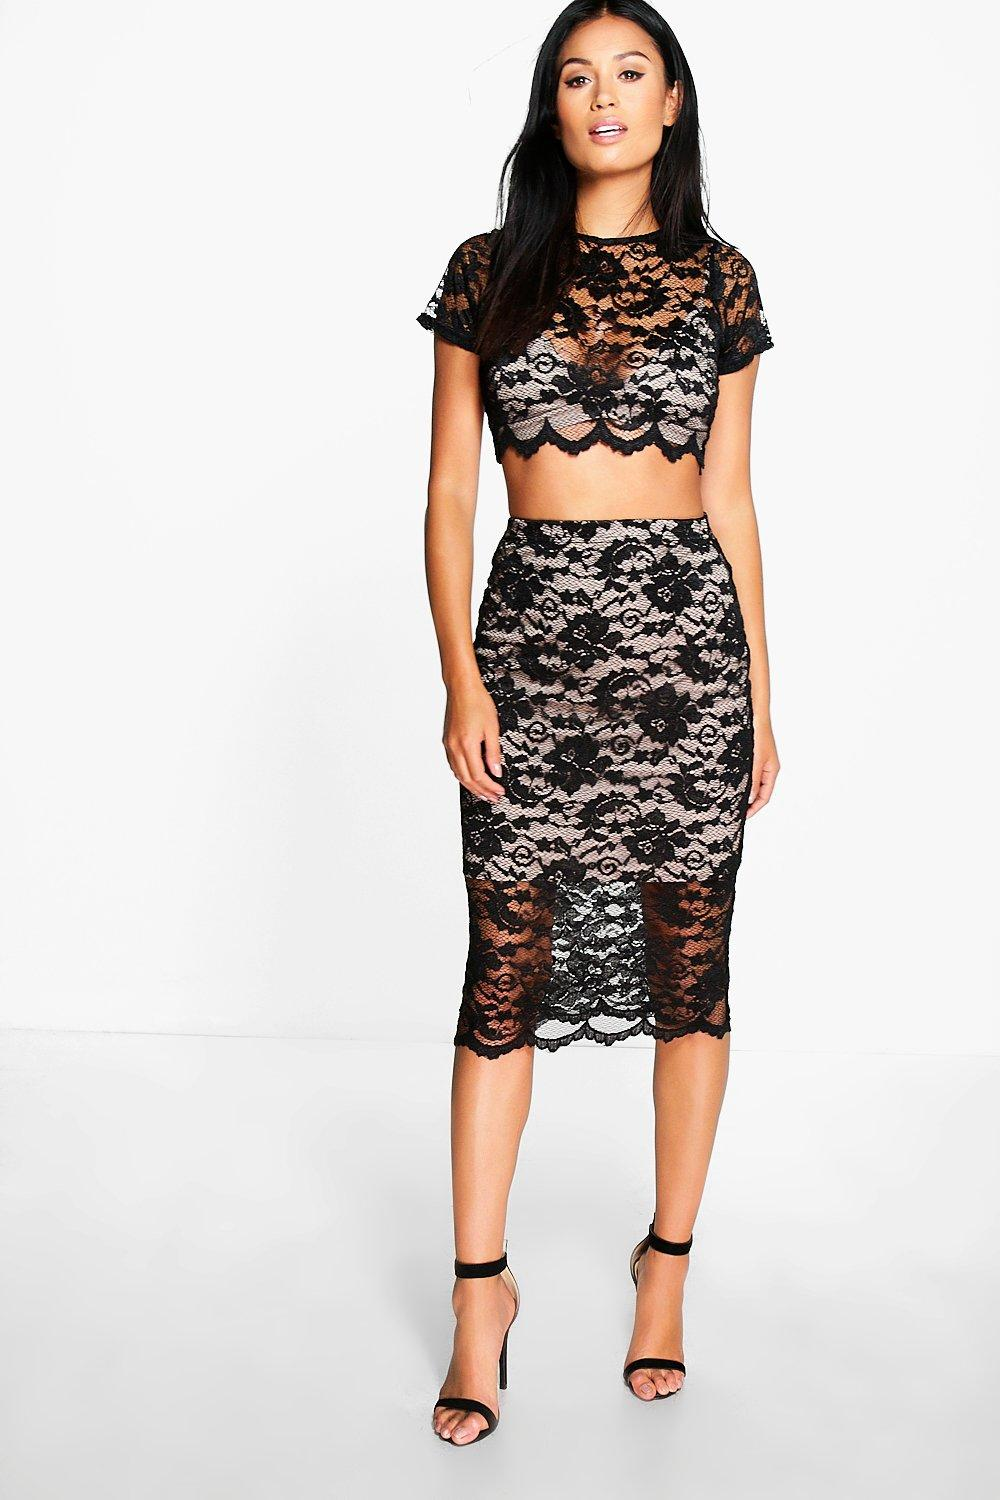 Madison3pc Bralet, Lace Crop and Midi Skirt Co-Ord